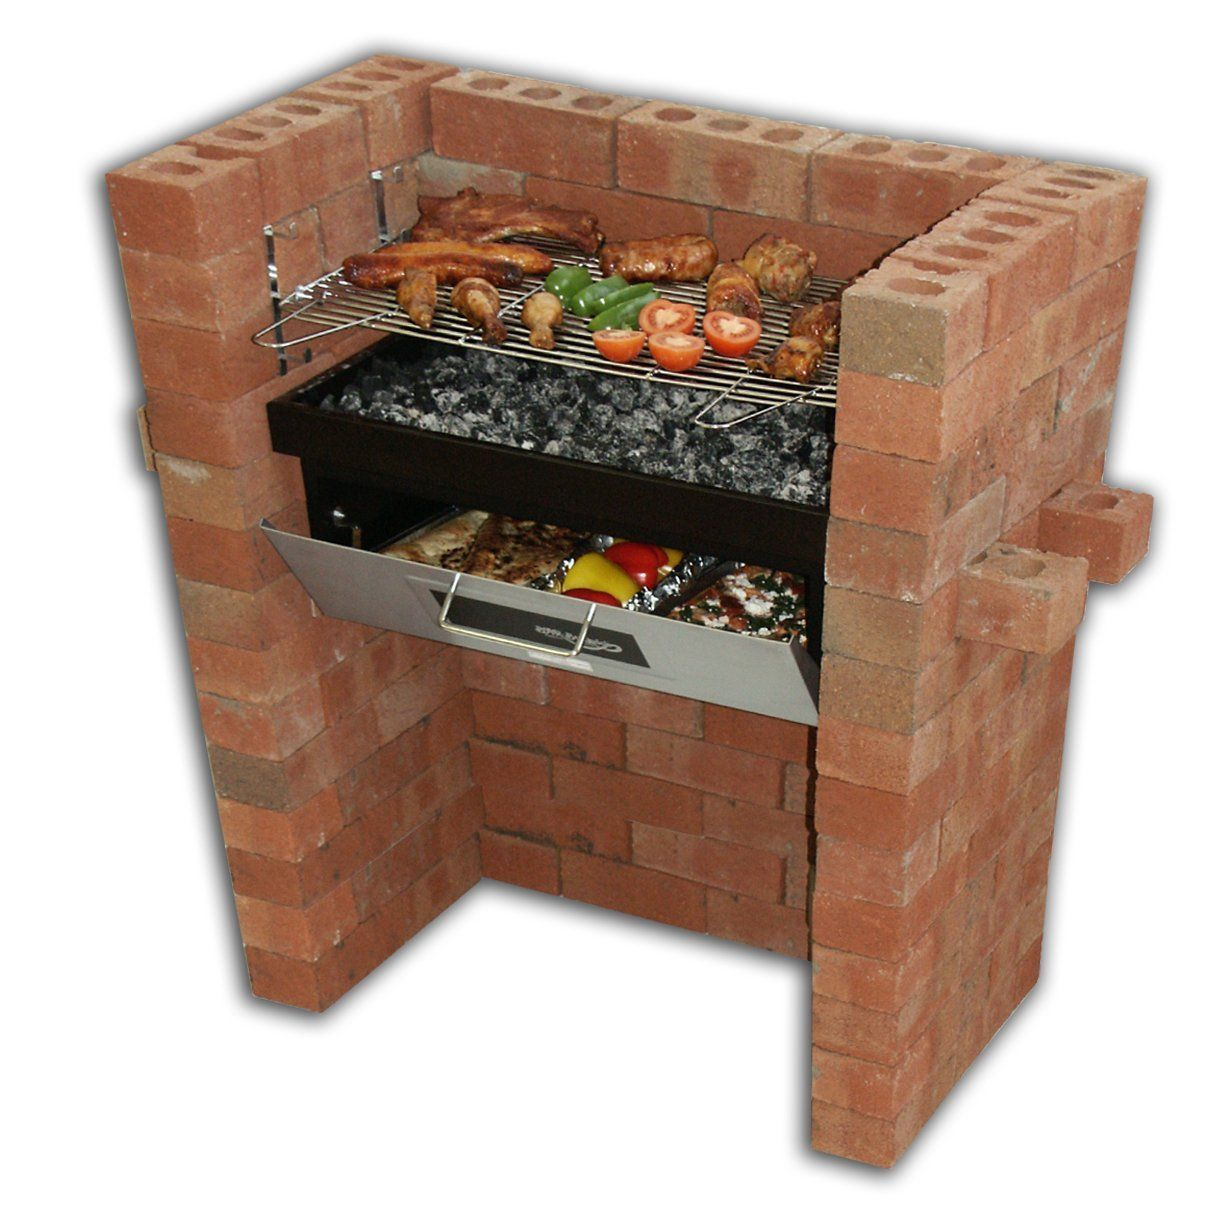 Brick Grills And Outdoor Countertops Building Your: Barbecue Grill & Bake With Oven & BBQ Grill